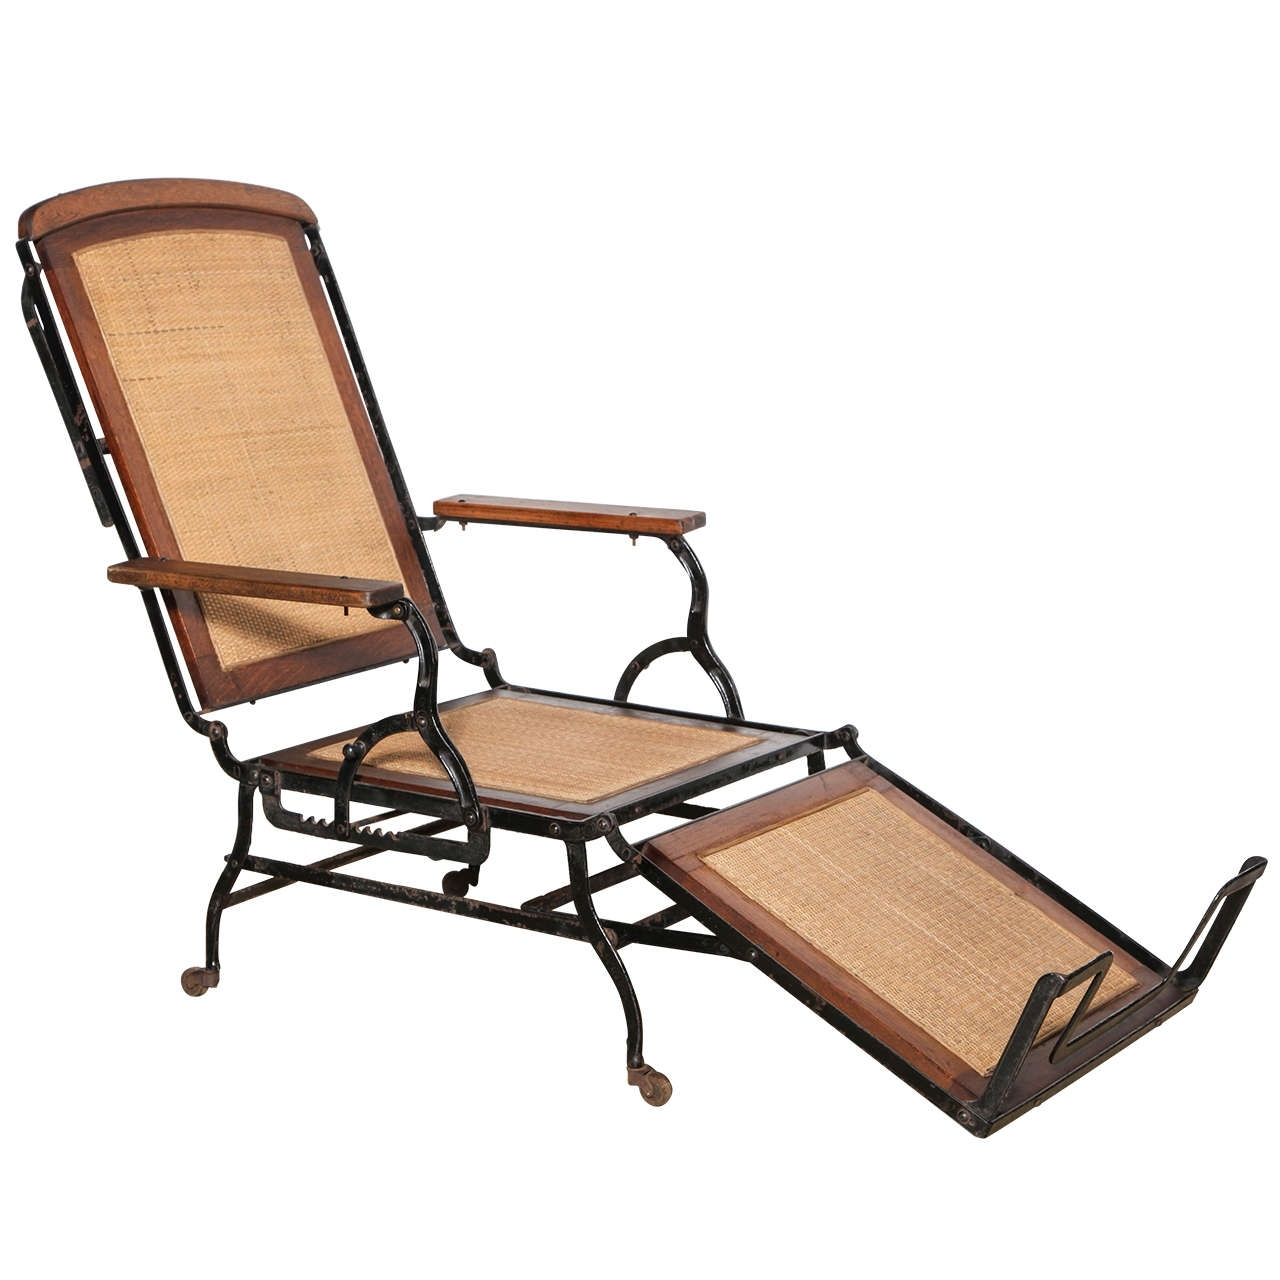 Popular Outdoor Chaise Lounge Chairs Under $200 In Cast Iron Chaise Lounge – Chiefkessler (View 4 of 15)